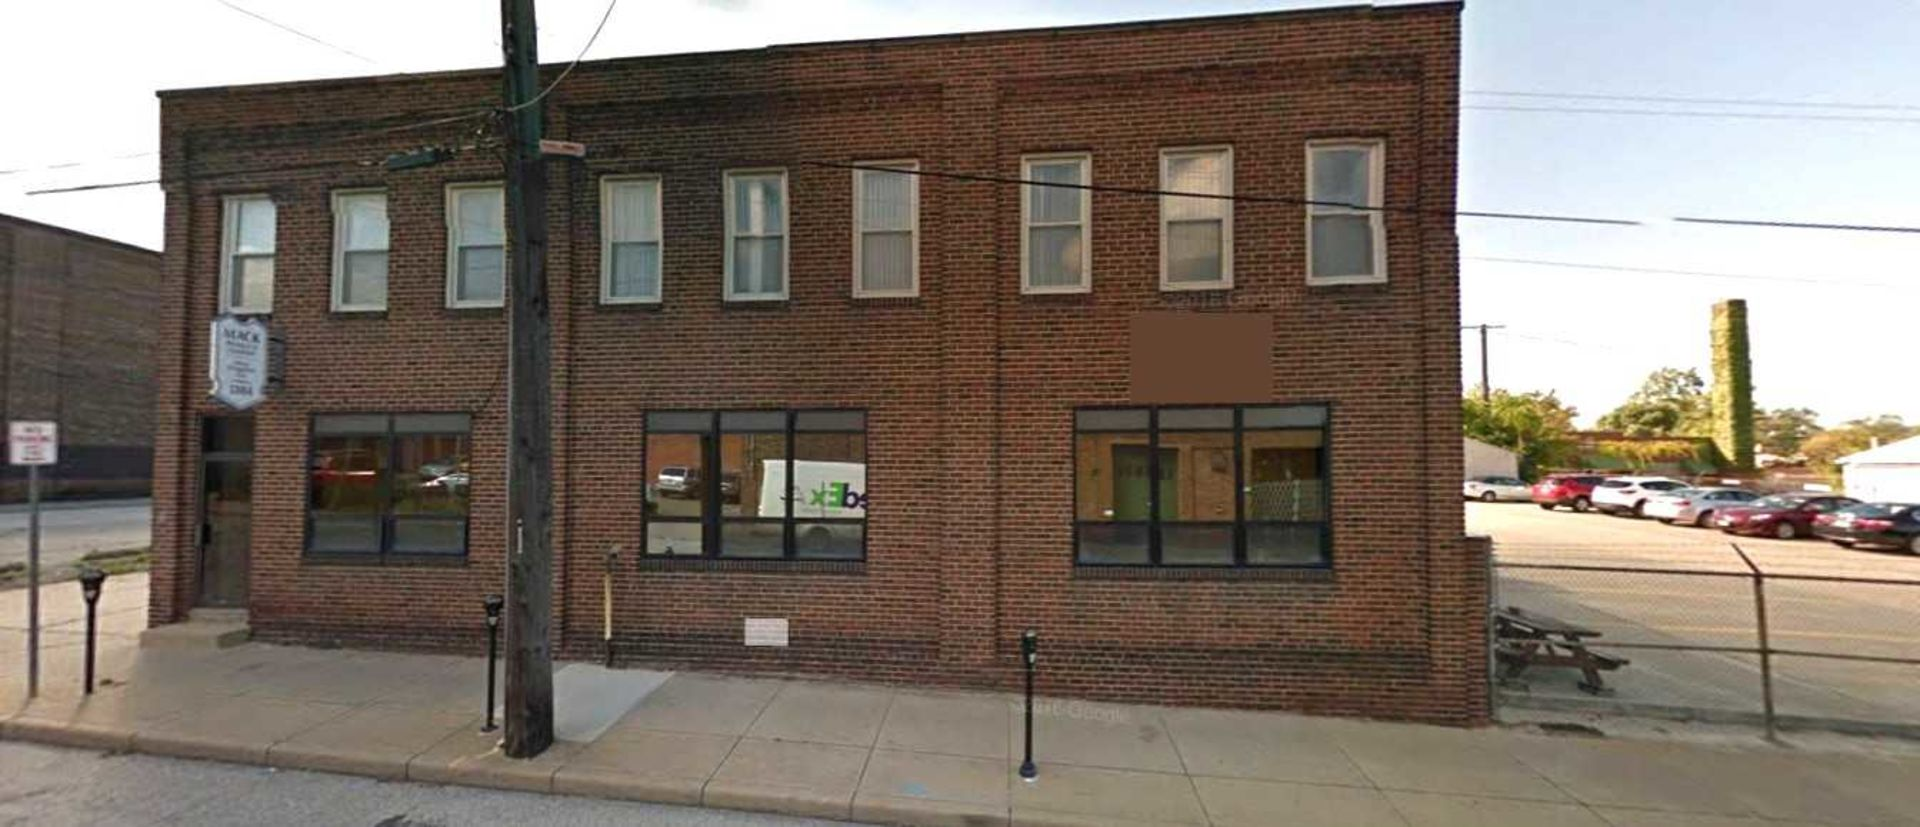 Unique Lakewood Office and Warehouse Building for Sale  for $79,000